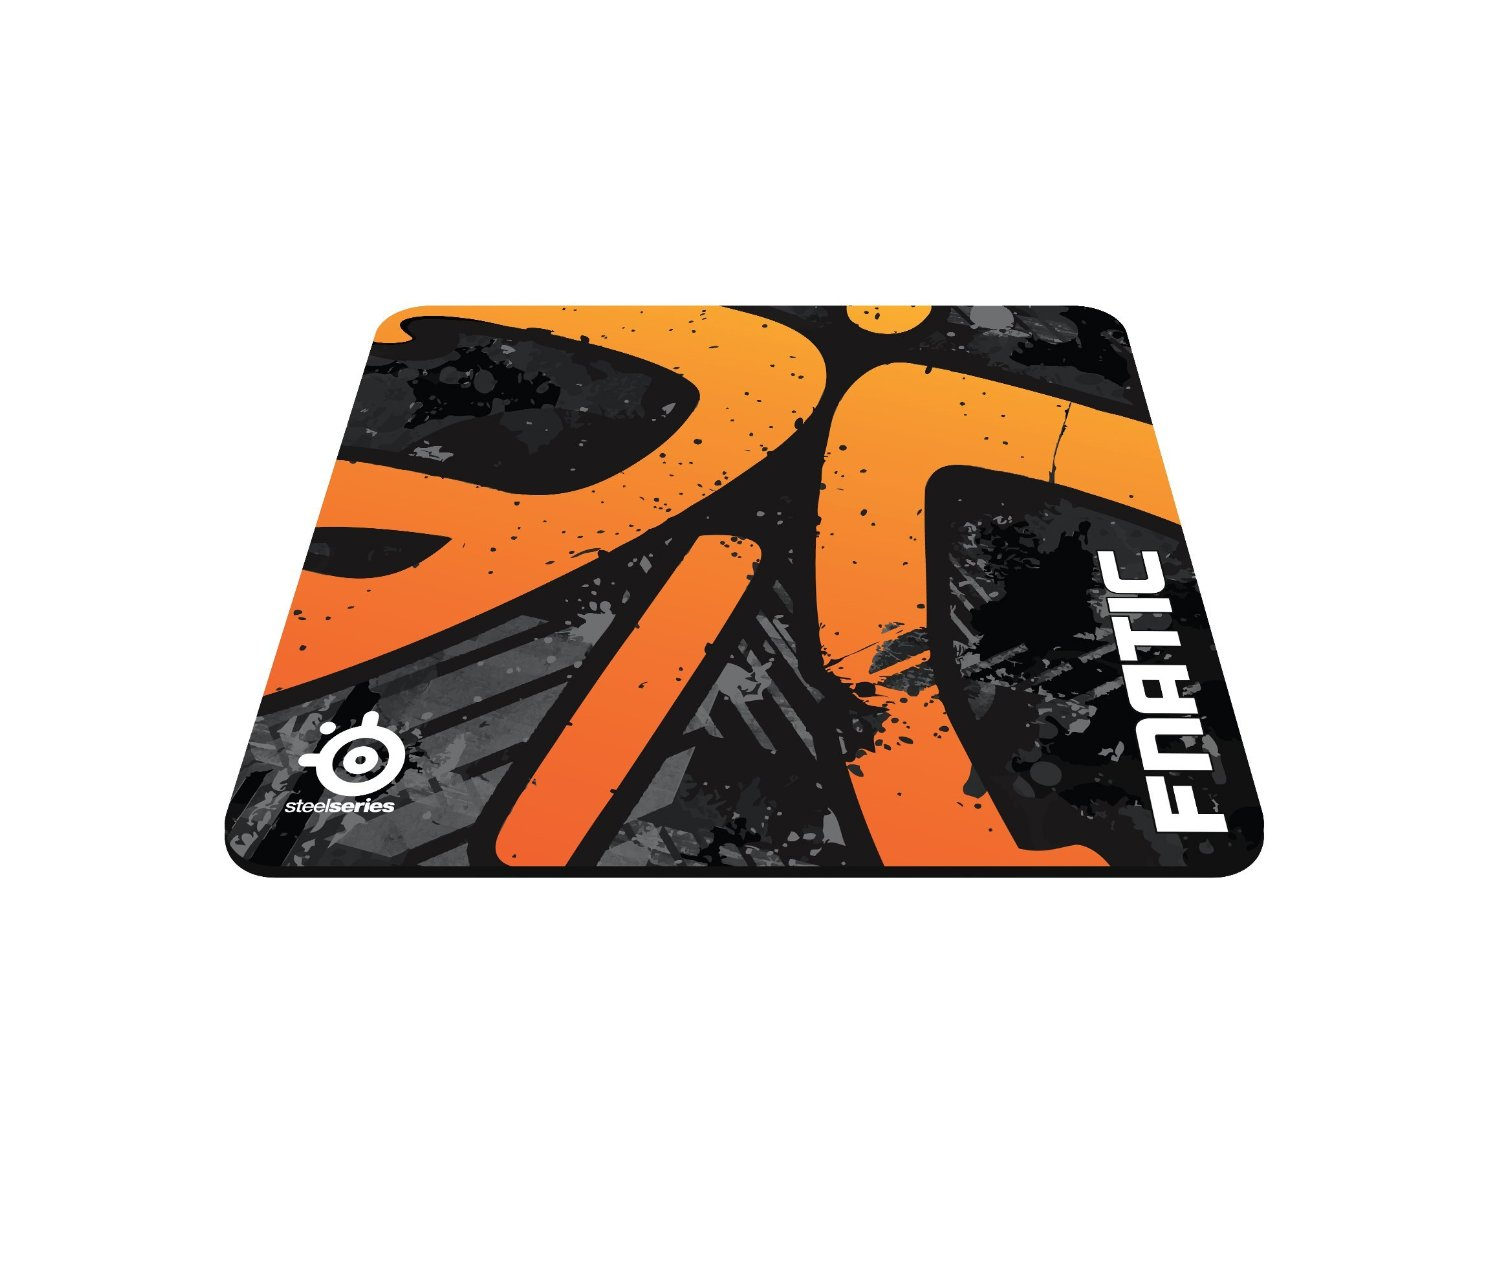 SteelSeries SteelSeries QcK Gaming Mouse Pad Fnatic Asphalt Edition